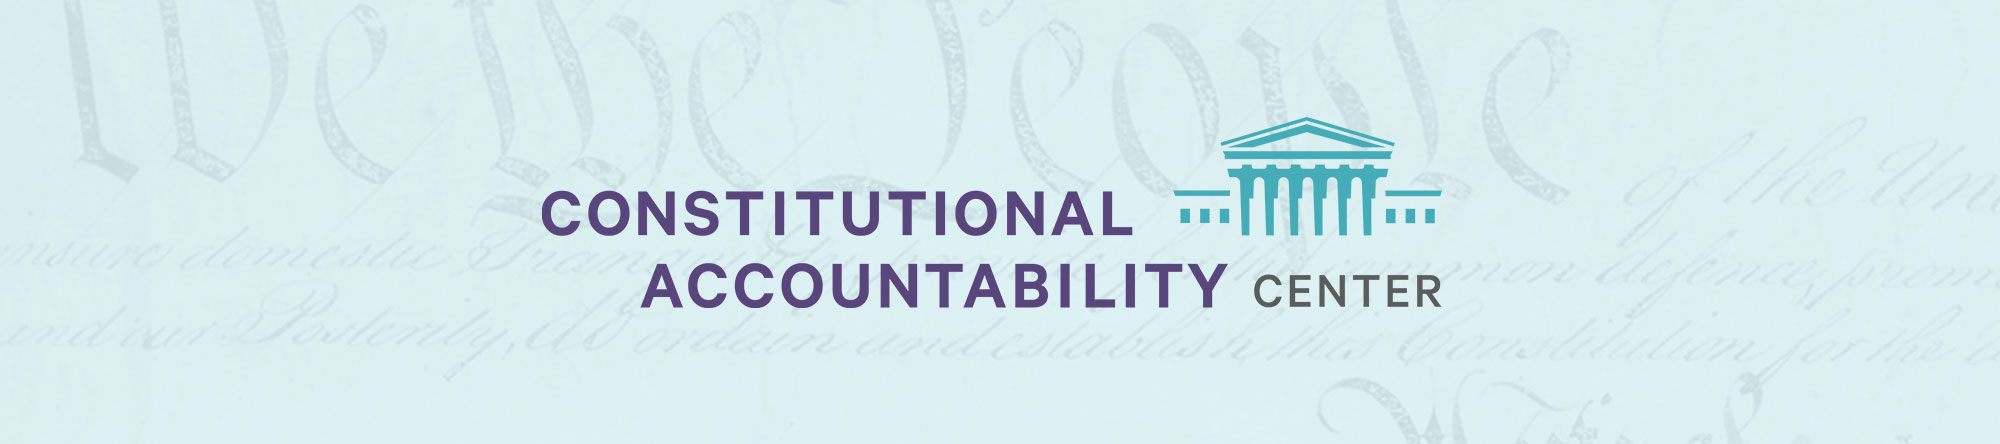 Constitutional Accountability Center